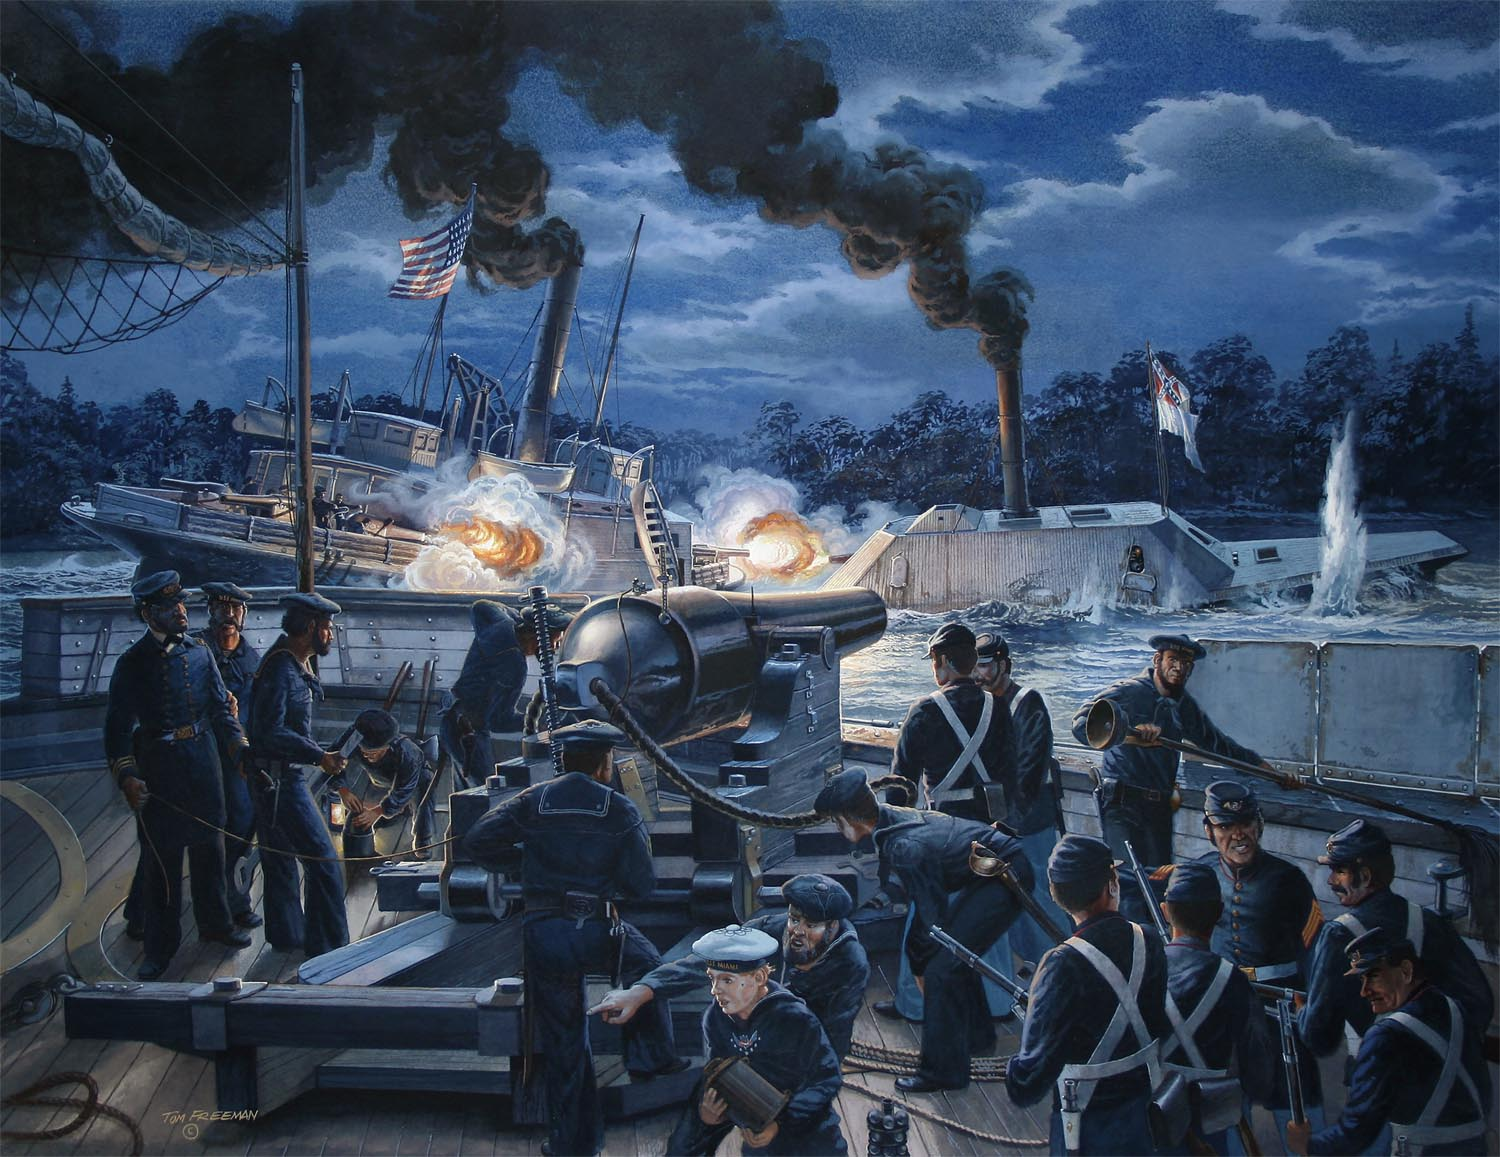 """""""Gunfight on the Roanoke,"""" The gun crew of the U.S.S. Miami witnesses the sinking to the U.S.S. Southfield by the C.S.S. Albemarle, April 19, 1864. Via TomFreemanArt.com"""